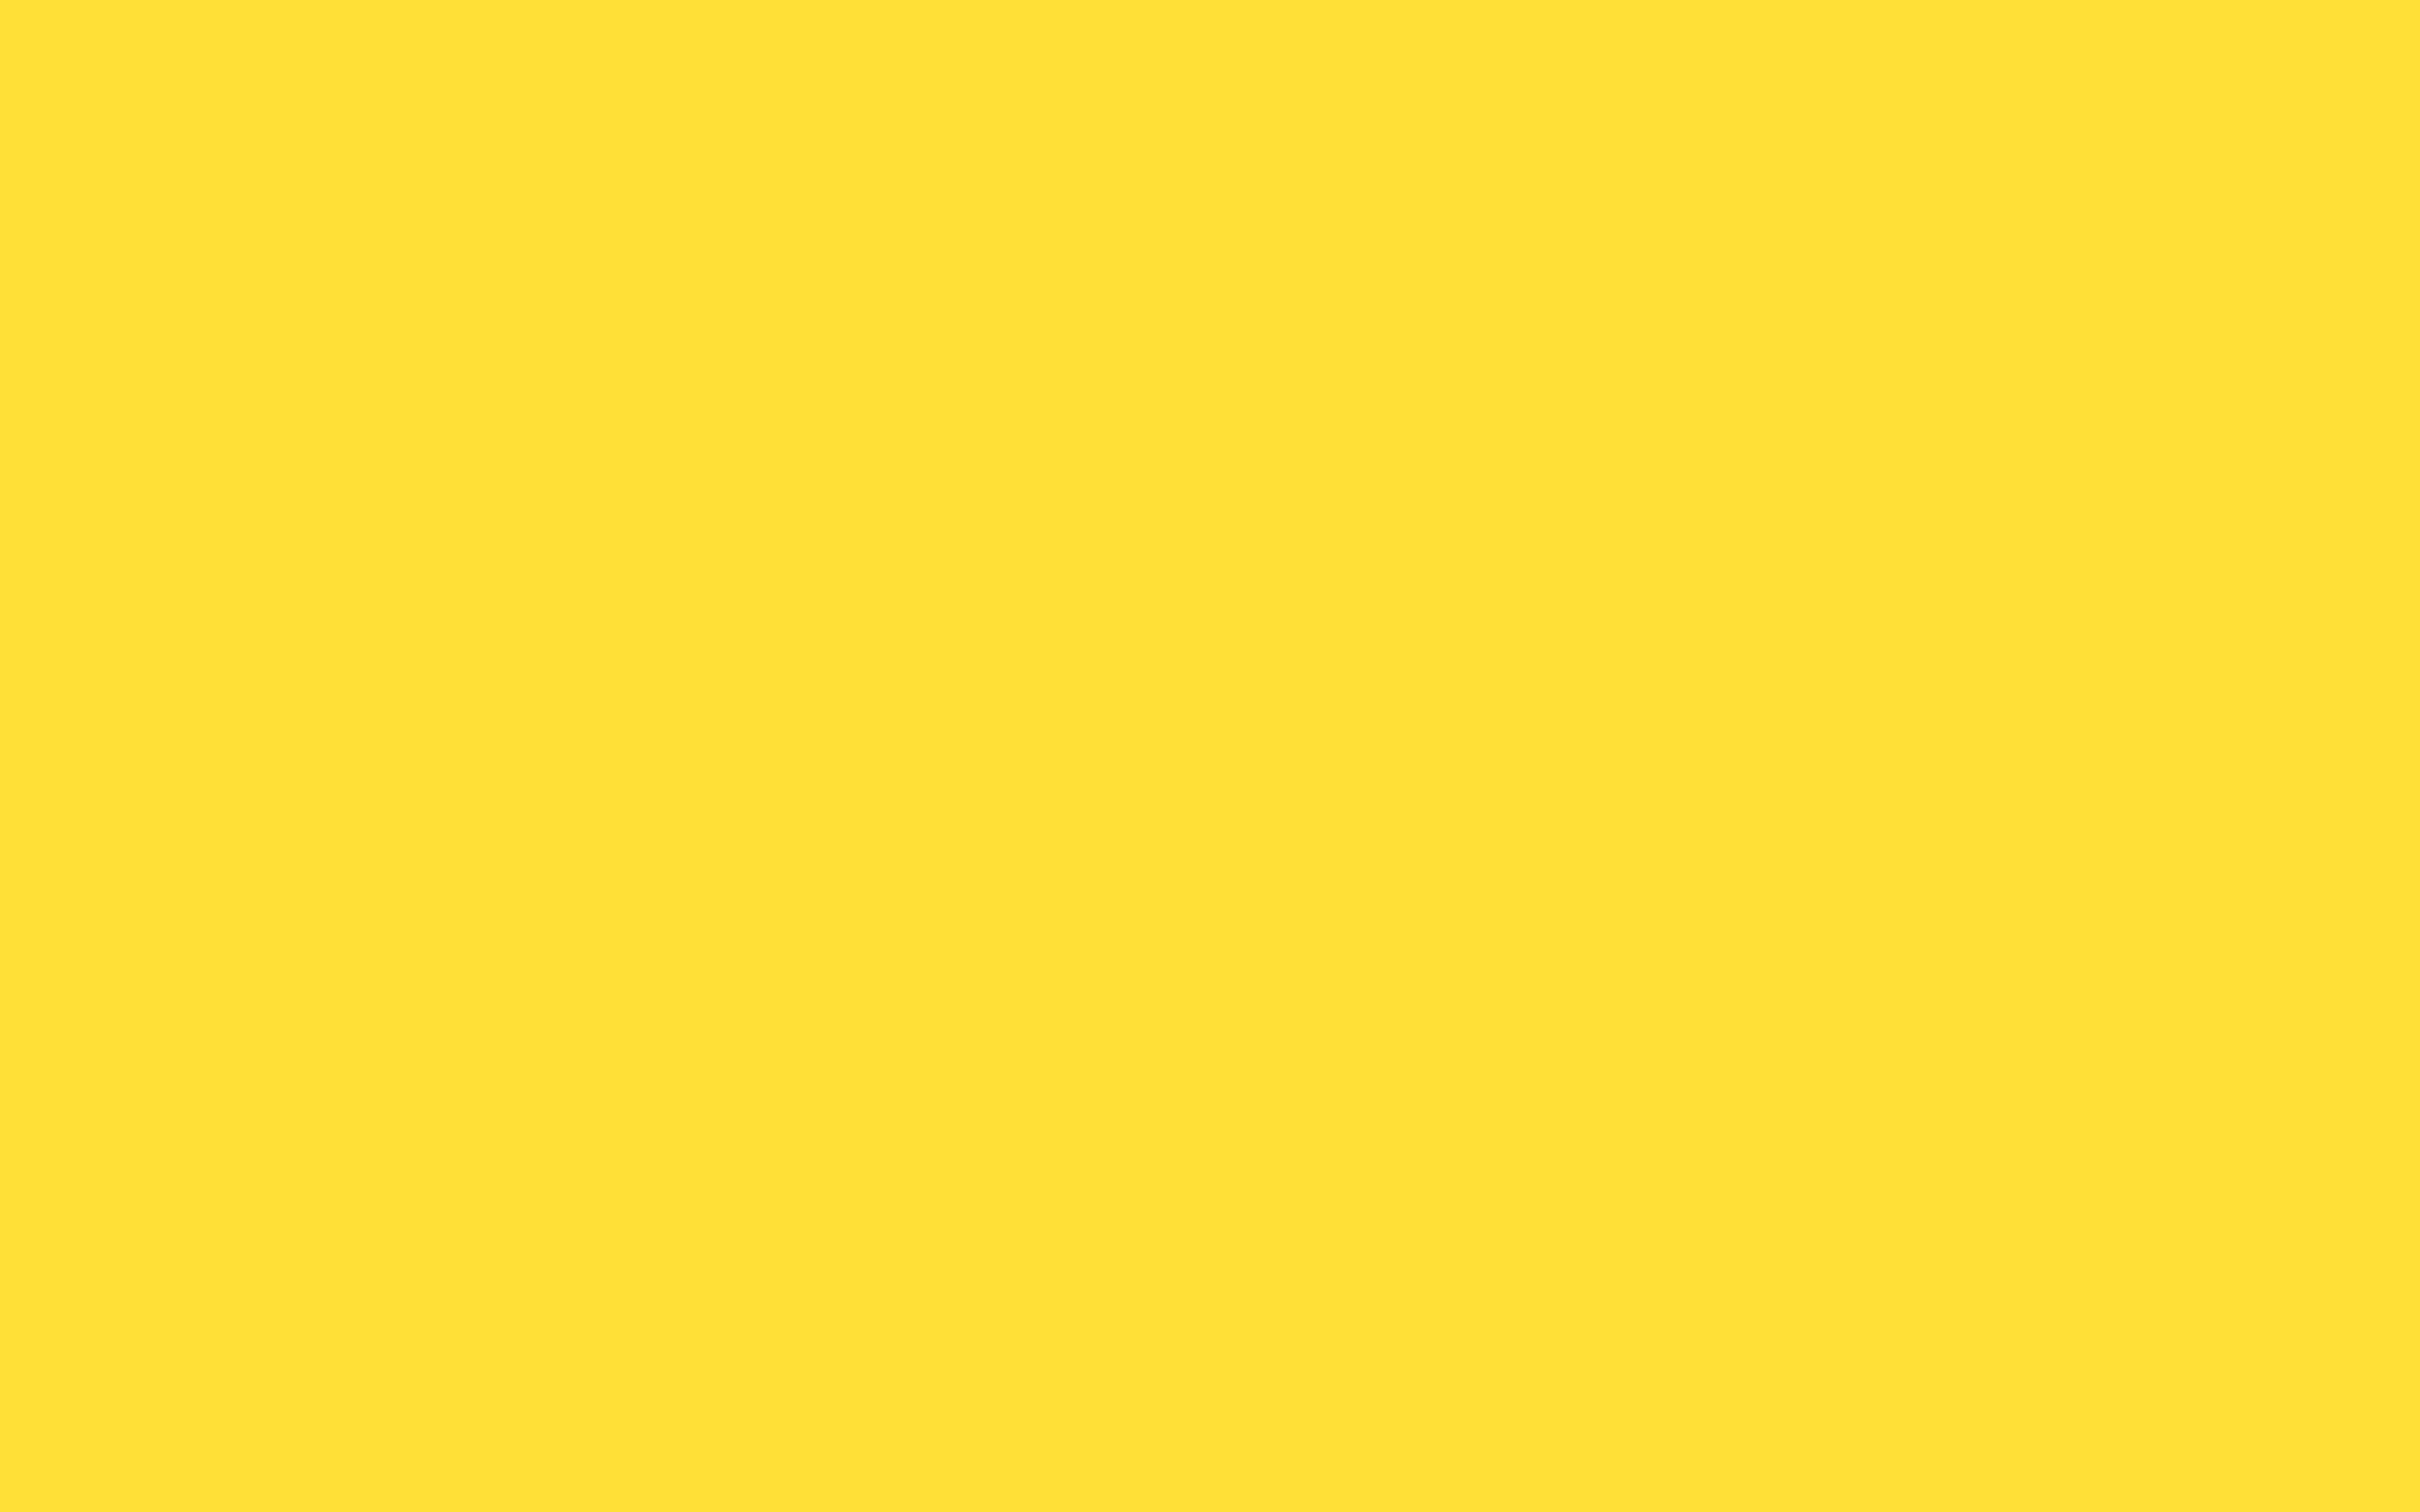 2560x1600 Banana Yellow Solid Color Background